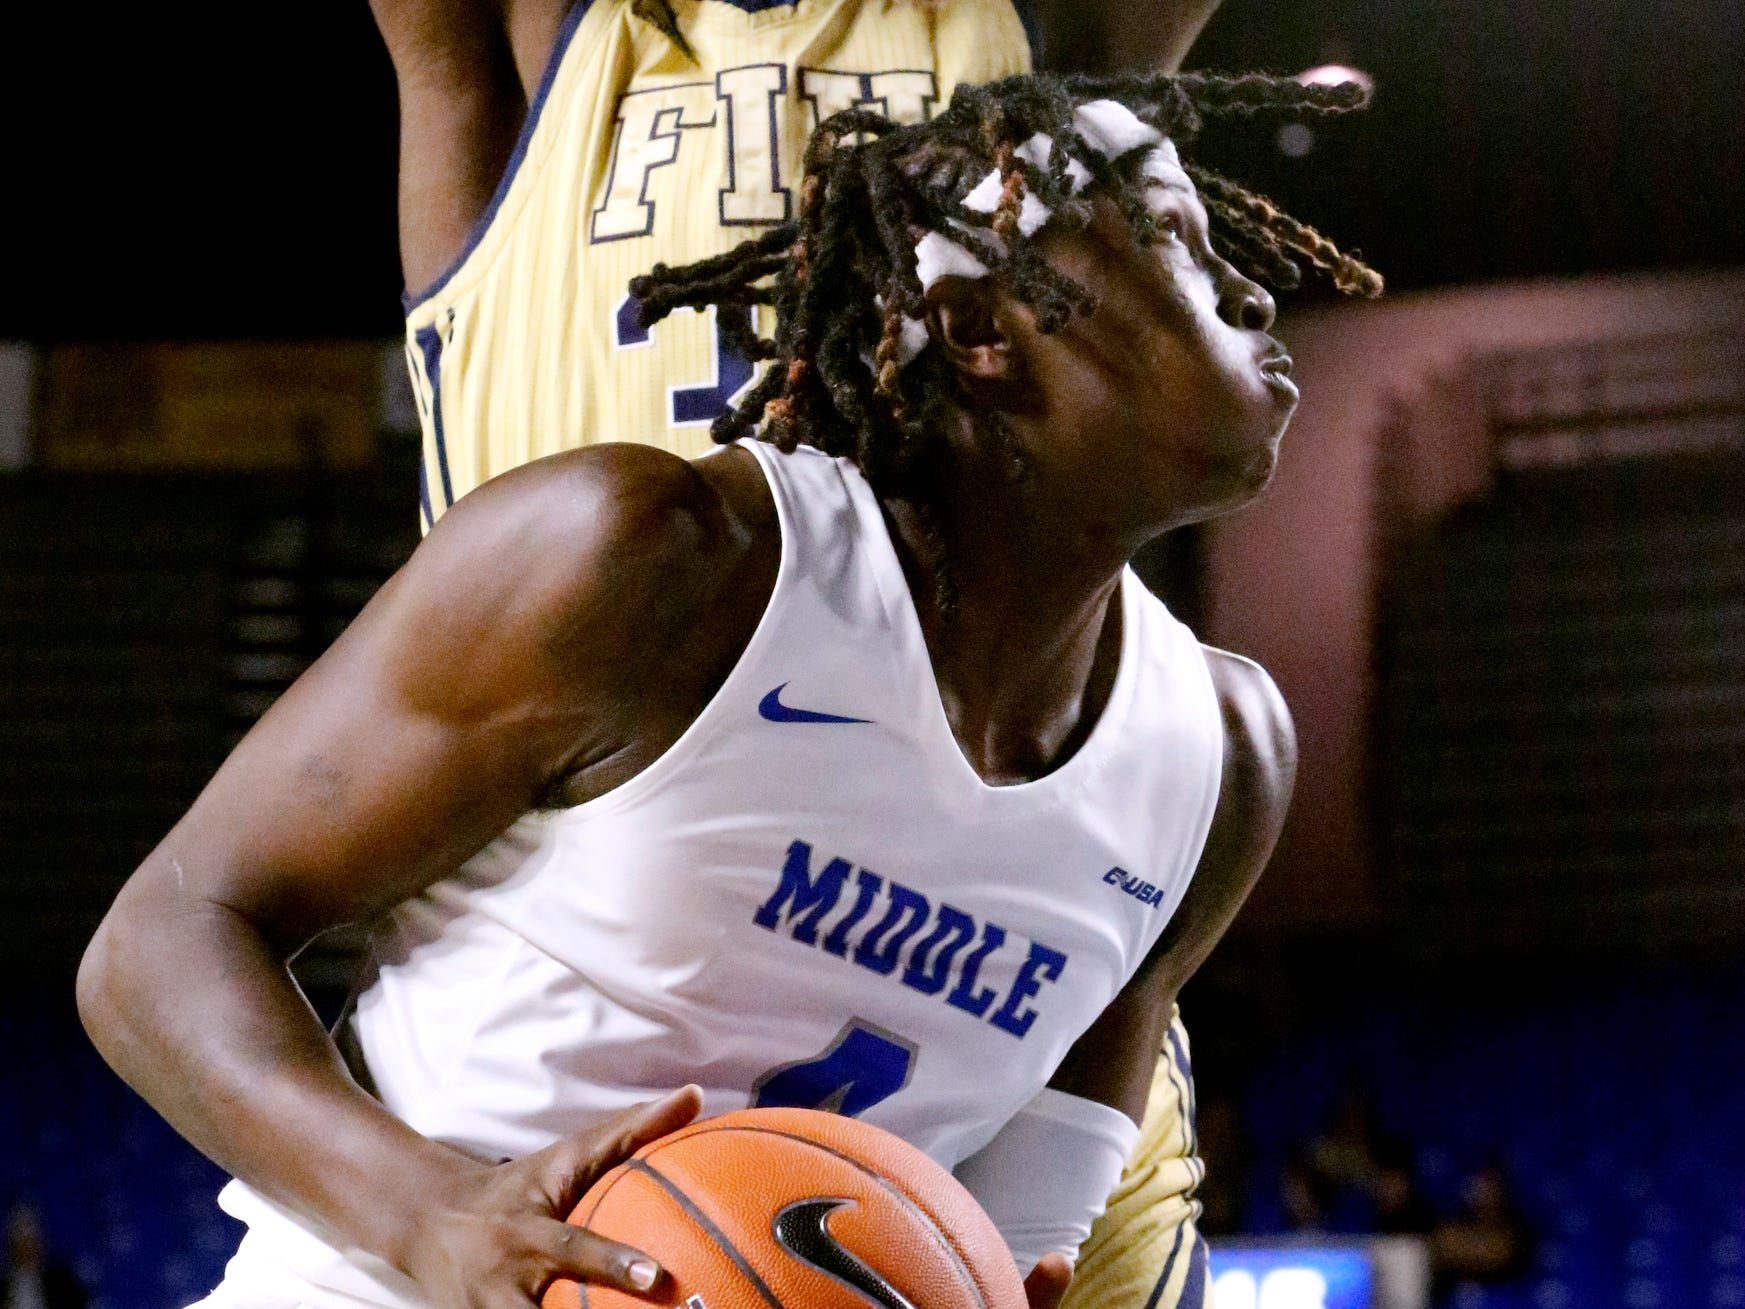 MTSU's forward James Hawthorne (4) goes up for a shot as FIU's forward Osasumwen Osaghae (34) defends the goal on Thursday Jan. 3, 2019, at MTSU.